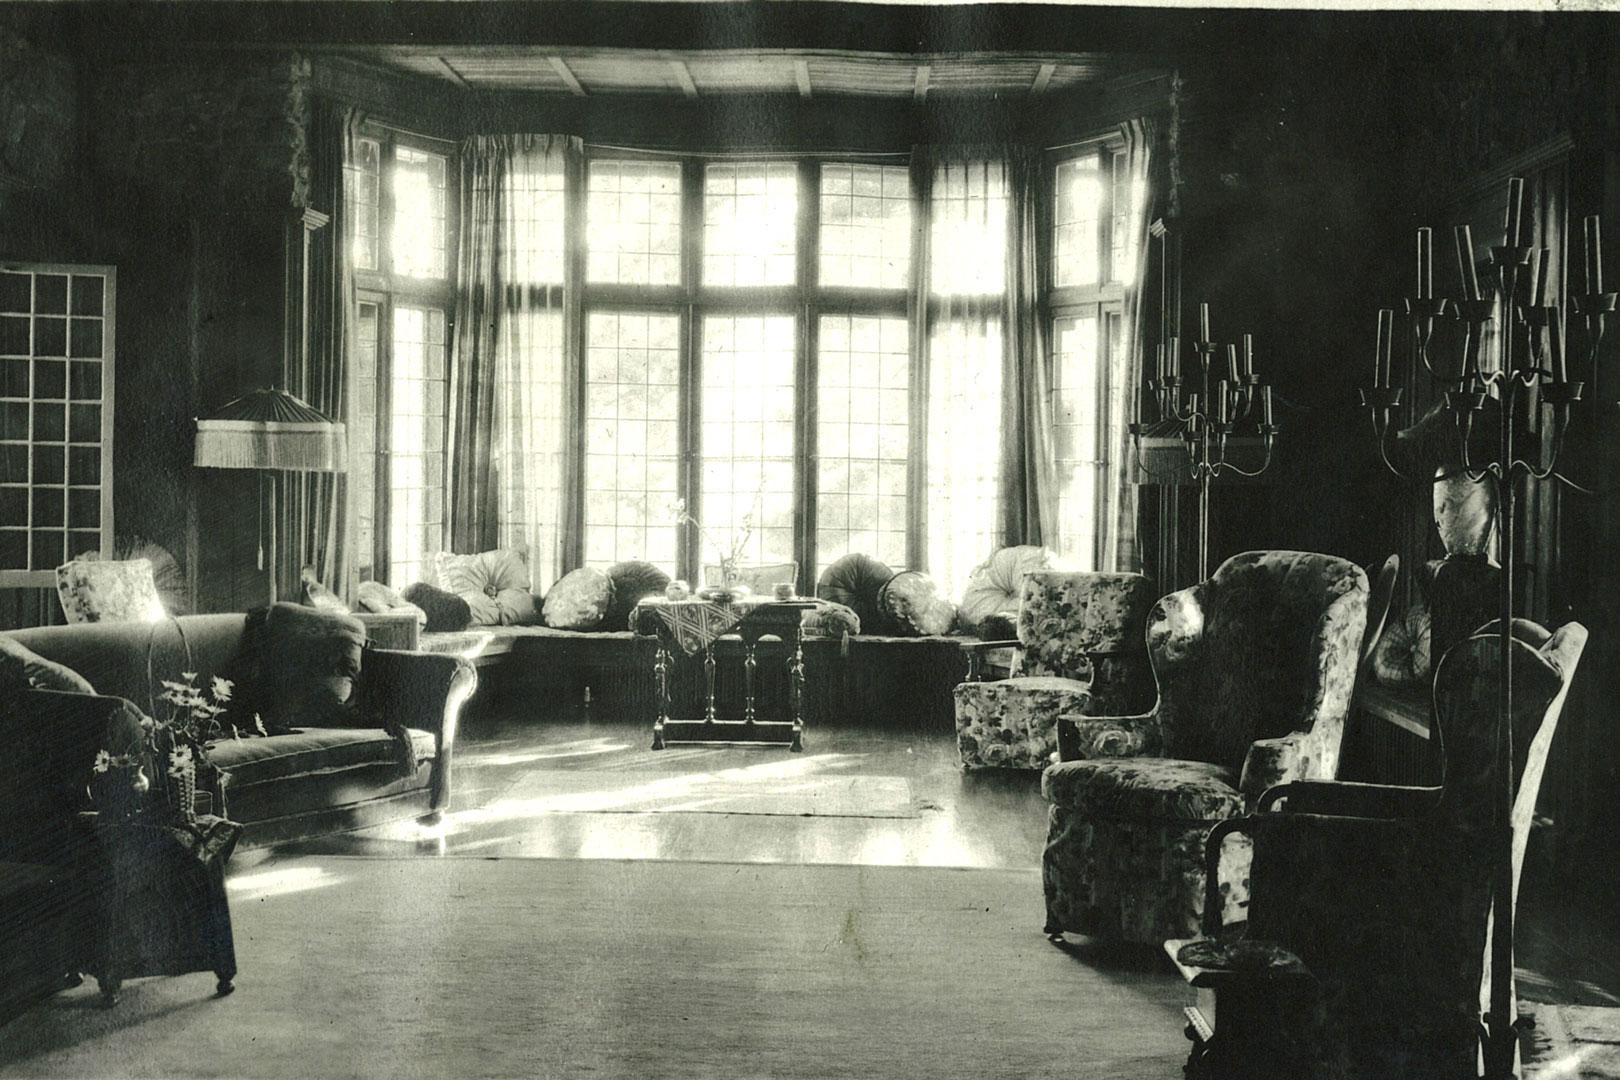 Manor House living room in the 1920's.